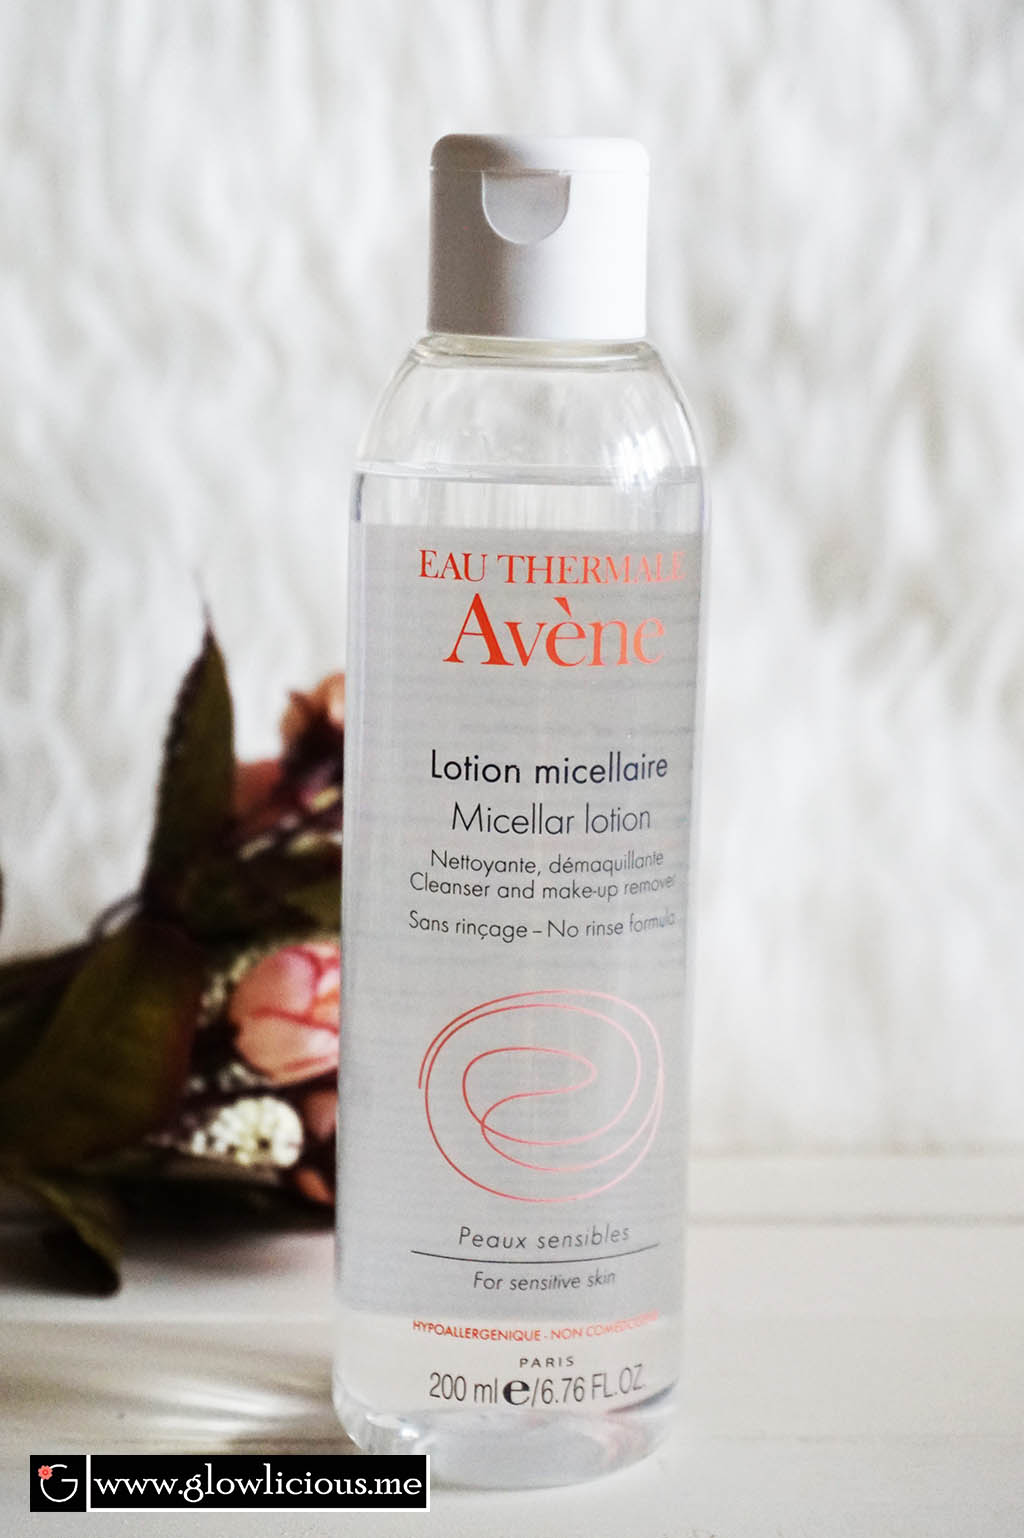 Avene Micellar Lotion Review S And Photos Glowlicious Me